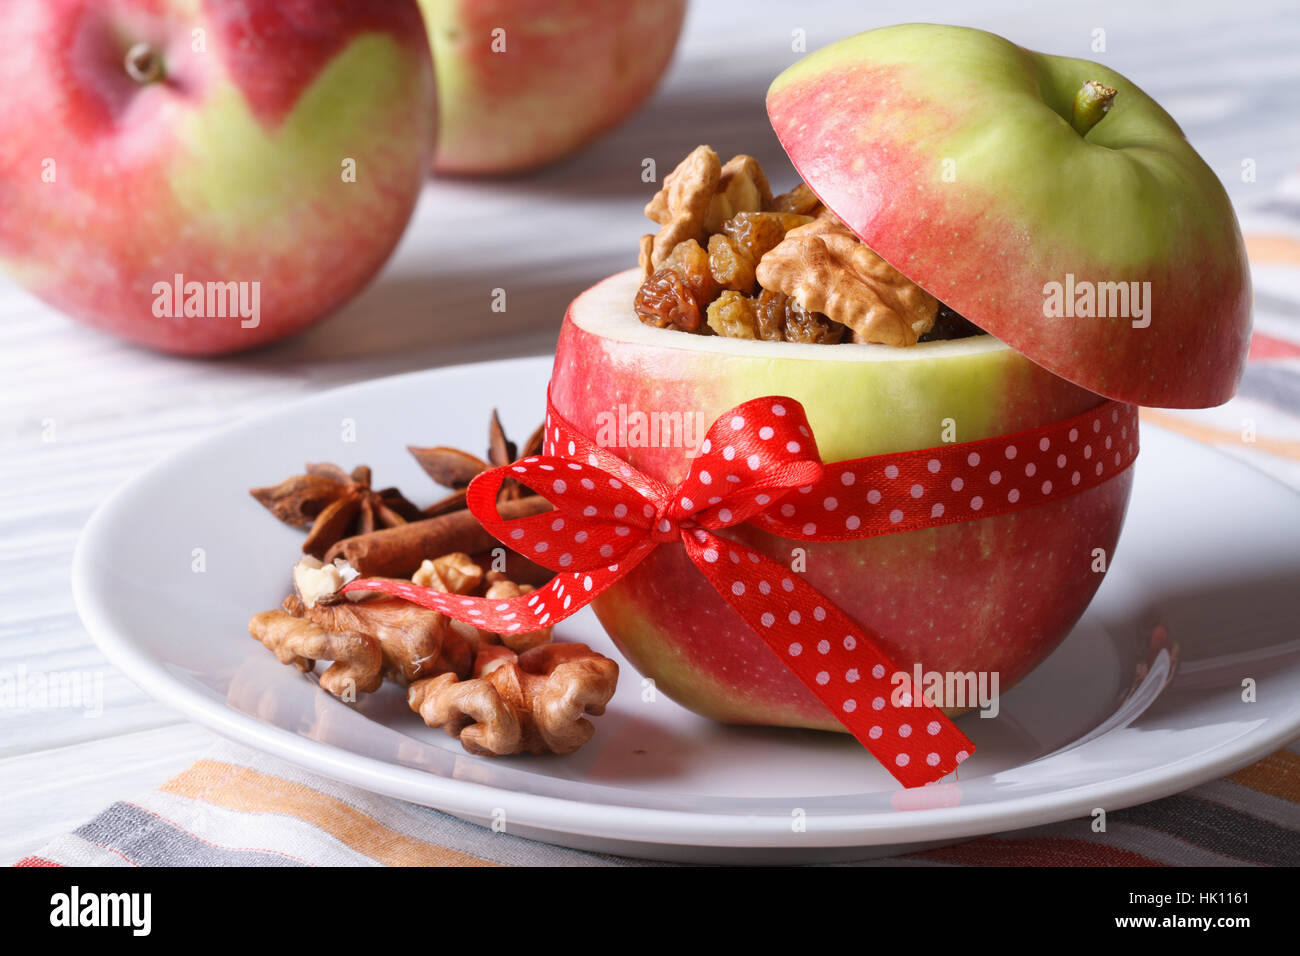 Fresh red apple stuffed with nuts and raisins on a white plate on the table horizontal close-up - Stock Image